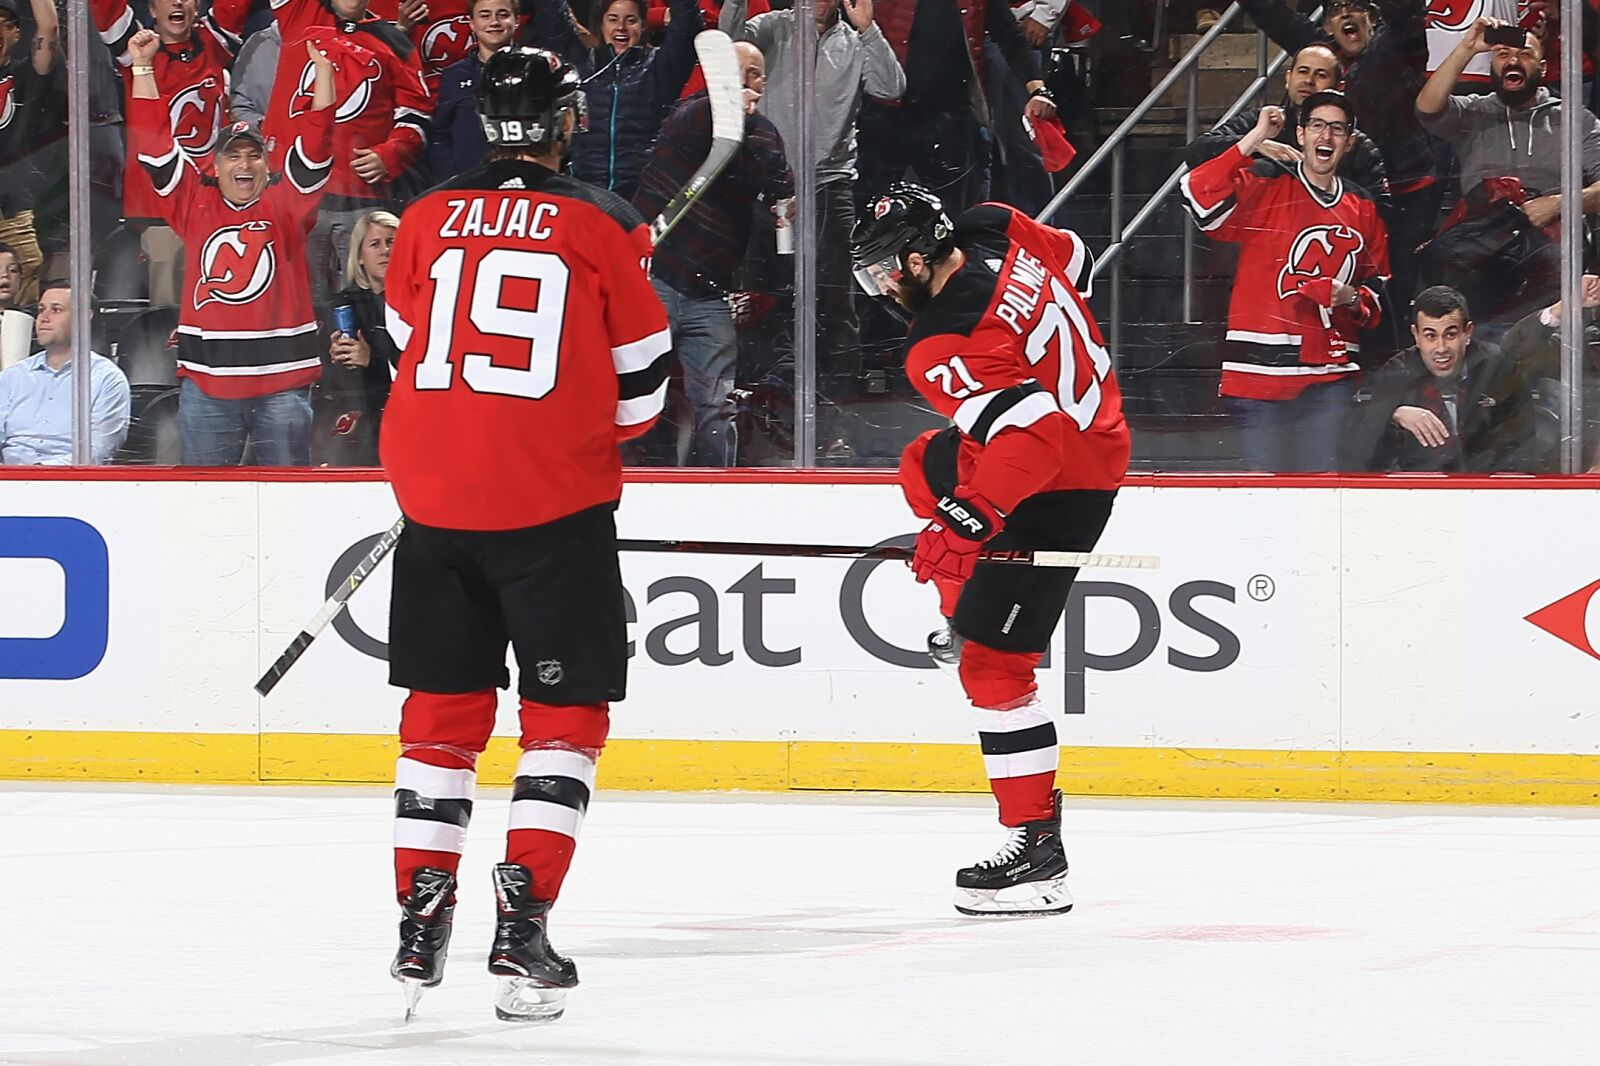 beae52bf75a New Jersey Devils: How To Fix Team's Power Play Unit